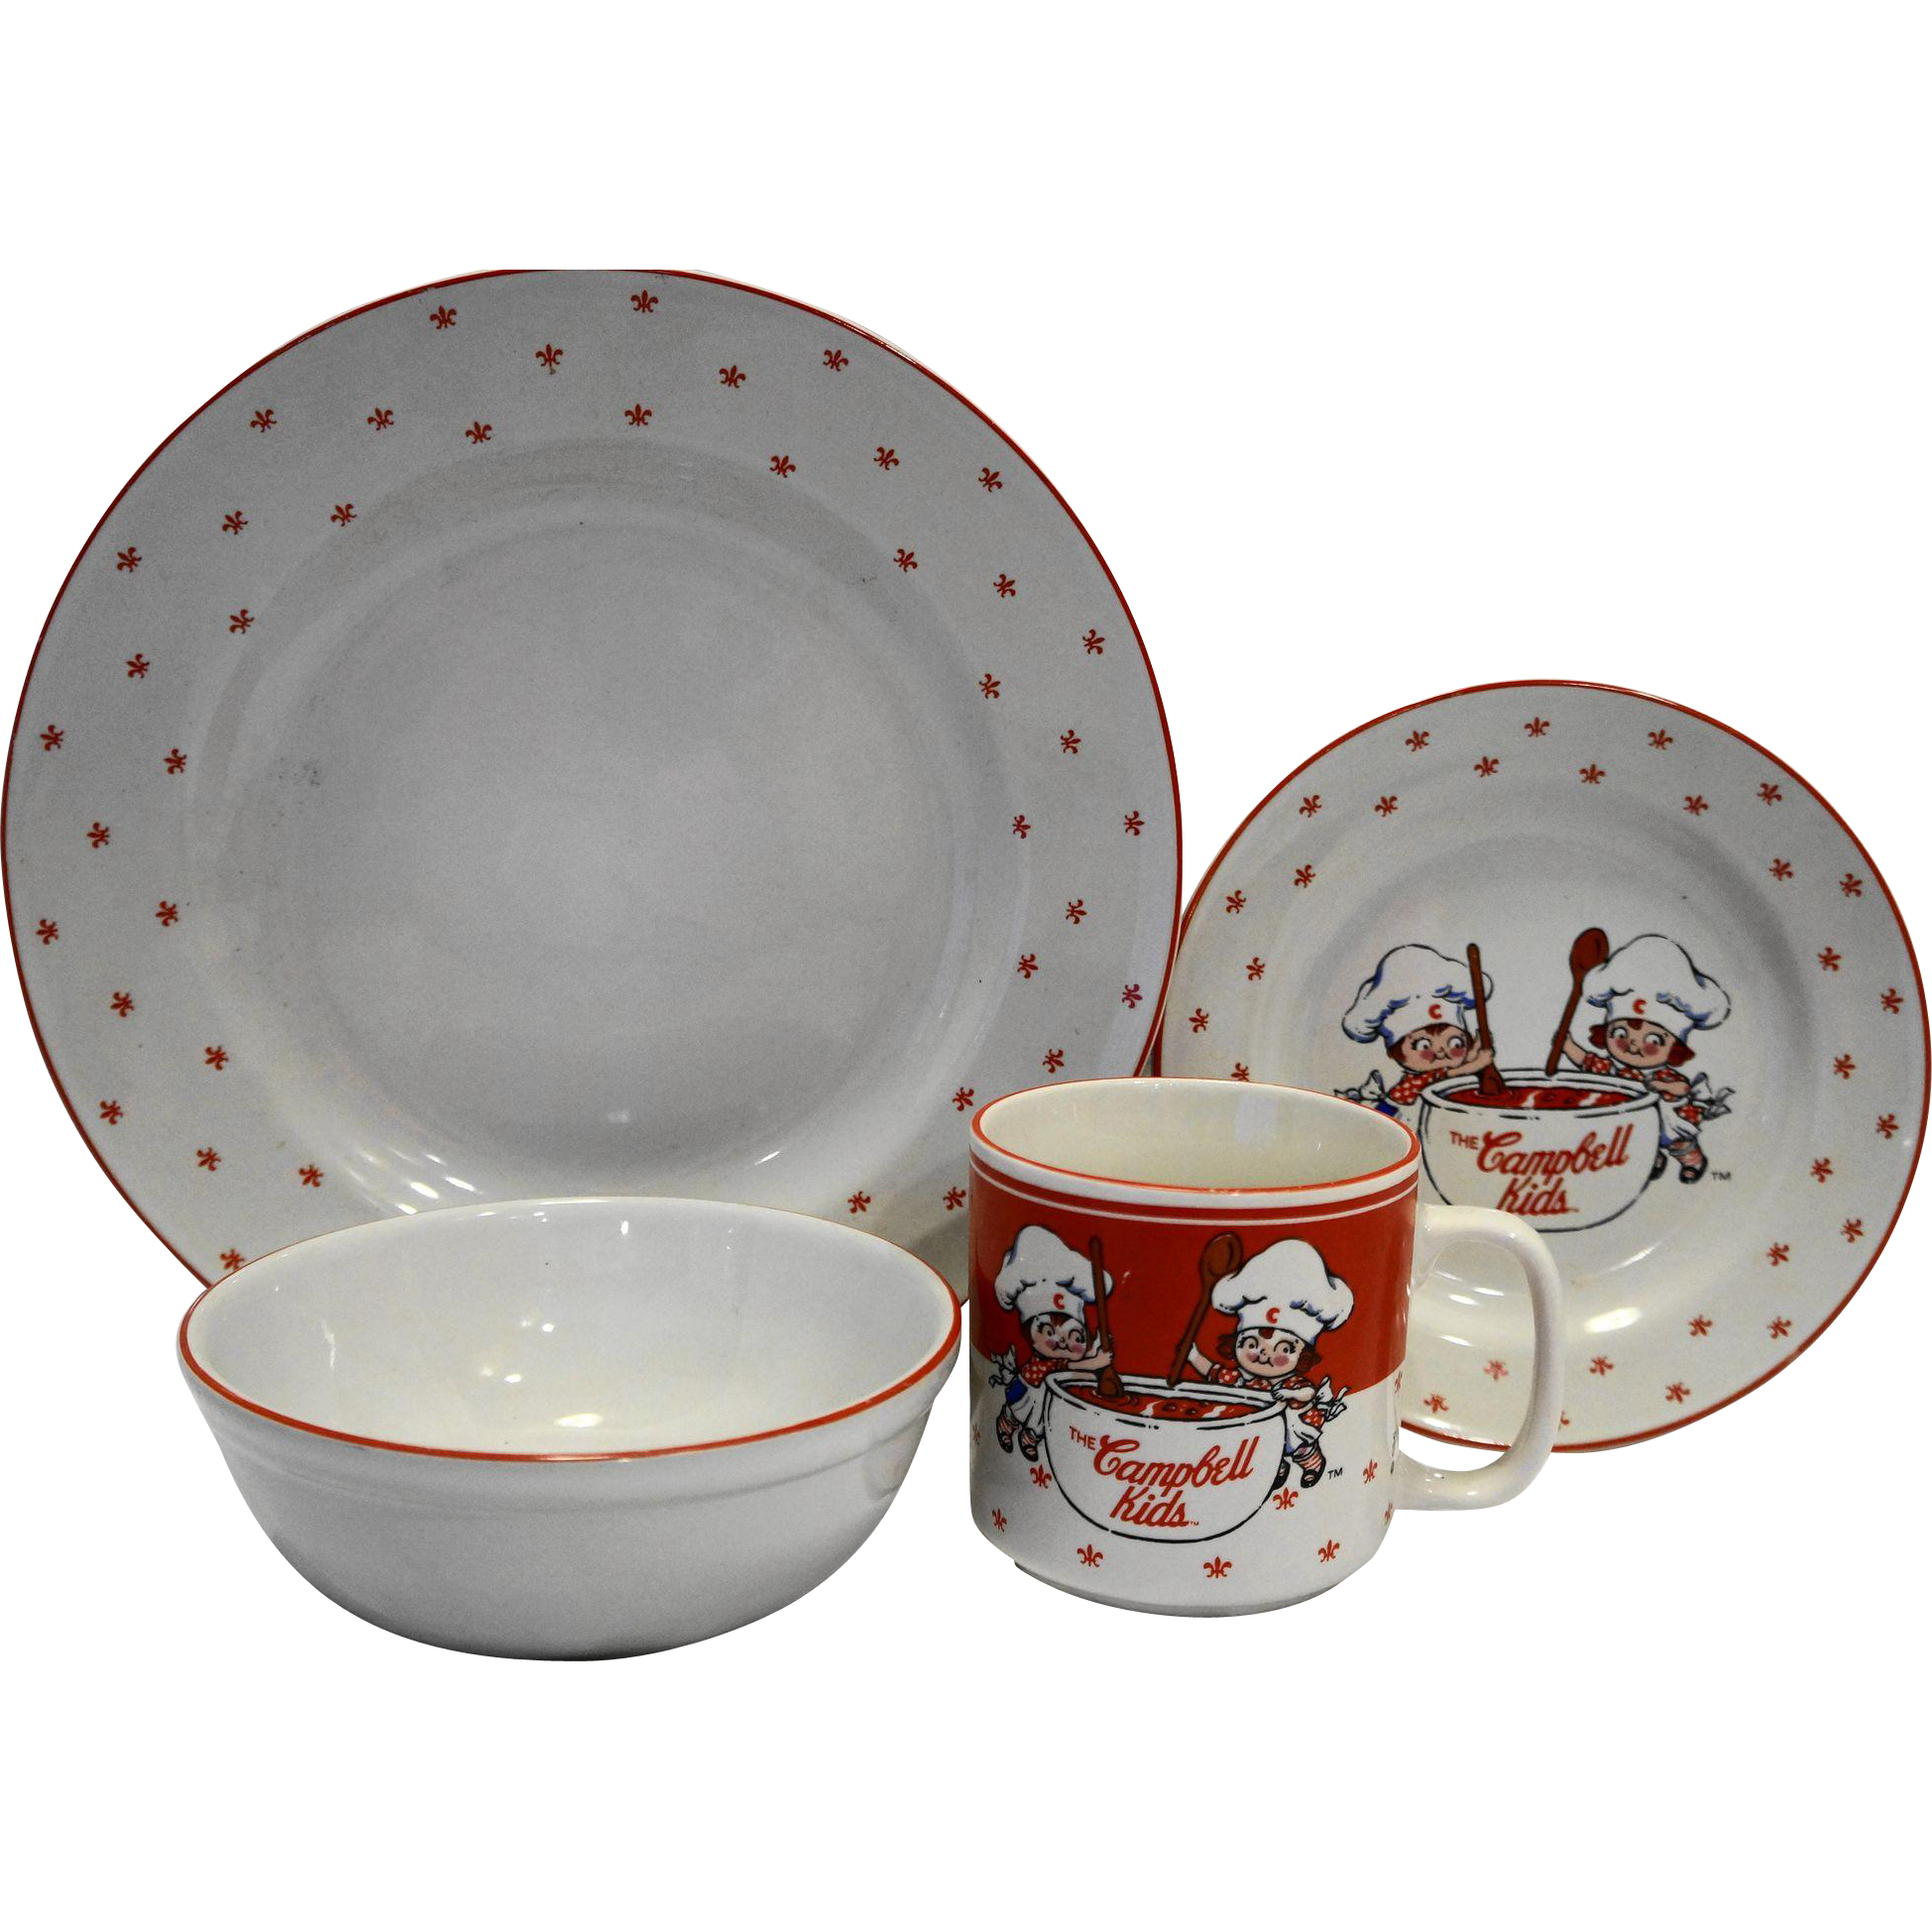 Campbell Kids Gibson China 1991 Place Setting 4 Pcs Plates Bowl Mug